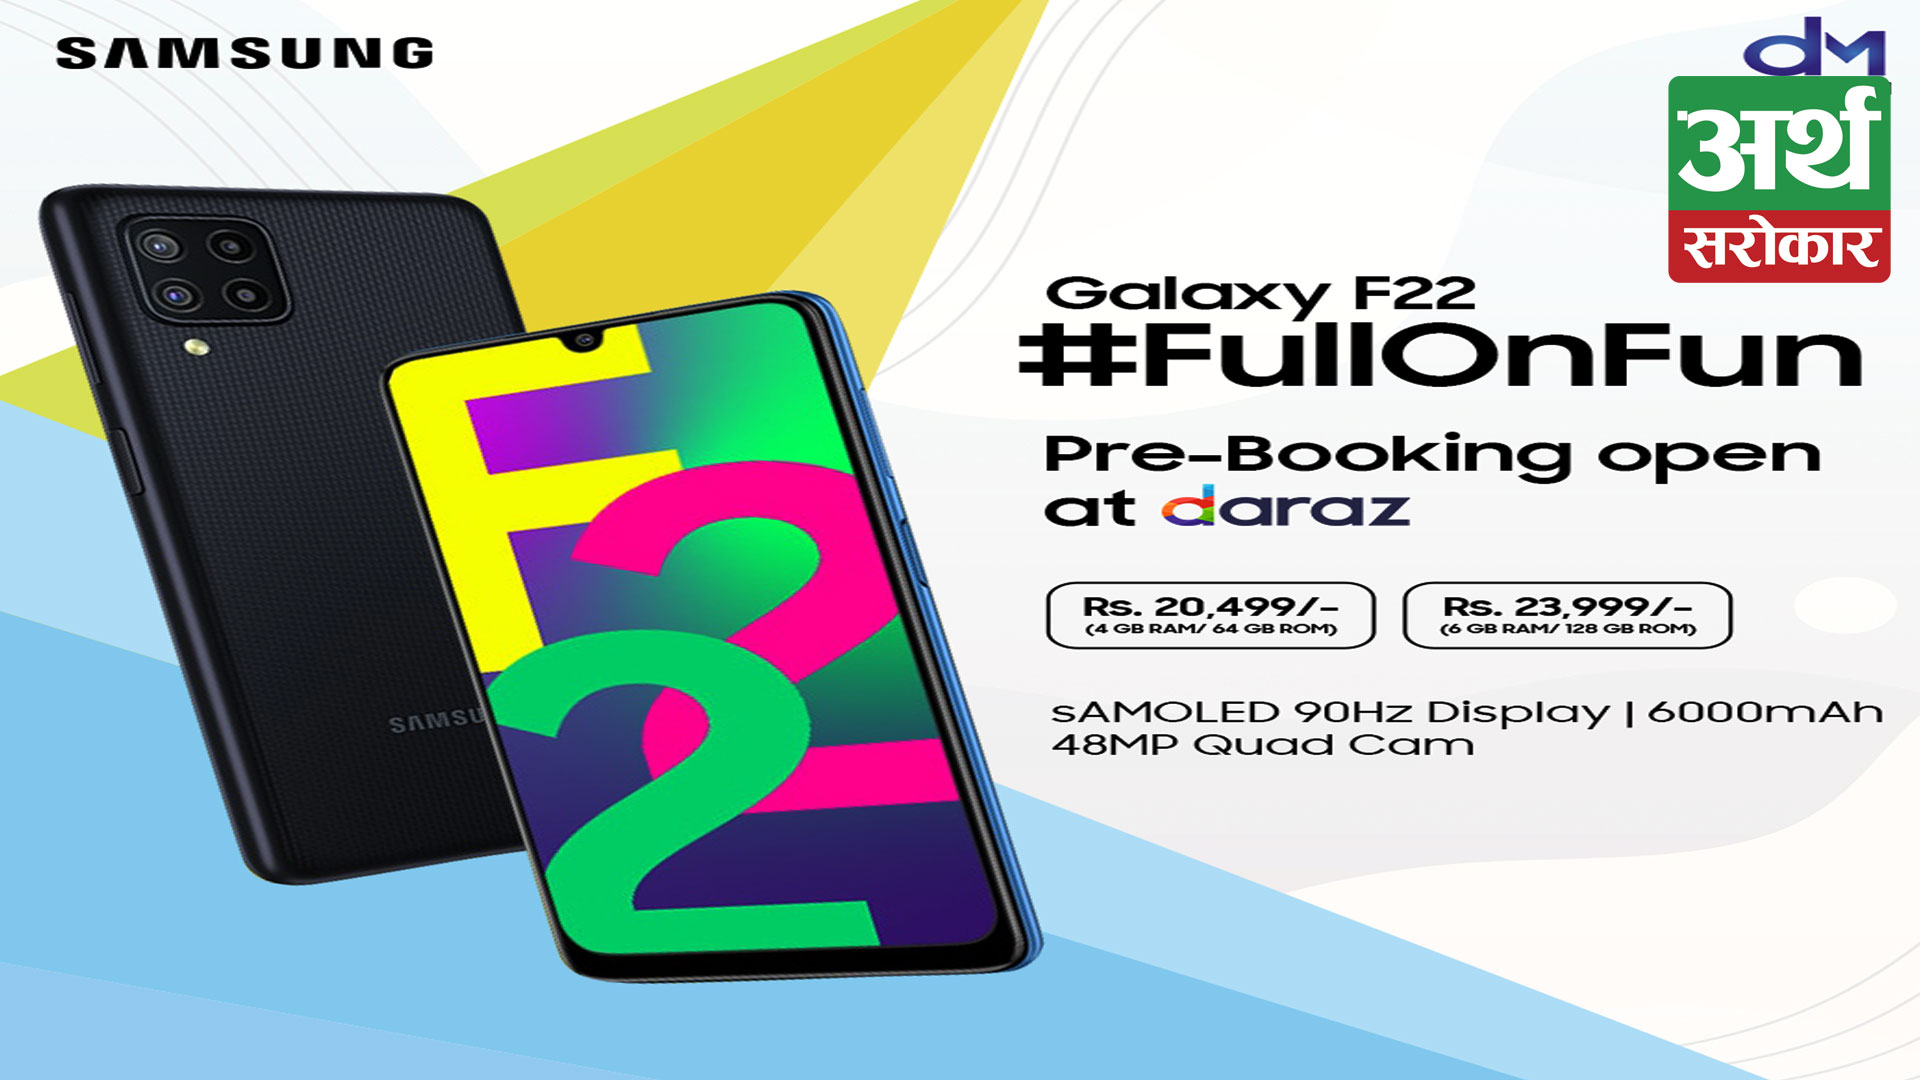 Daraz and Samsung join hands to launch pre-bookings of the new Galaxy G22